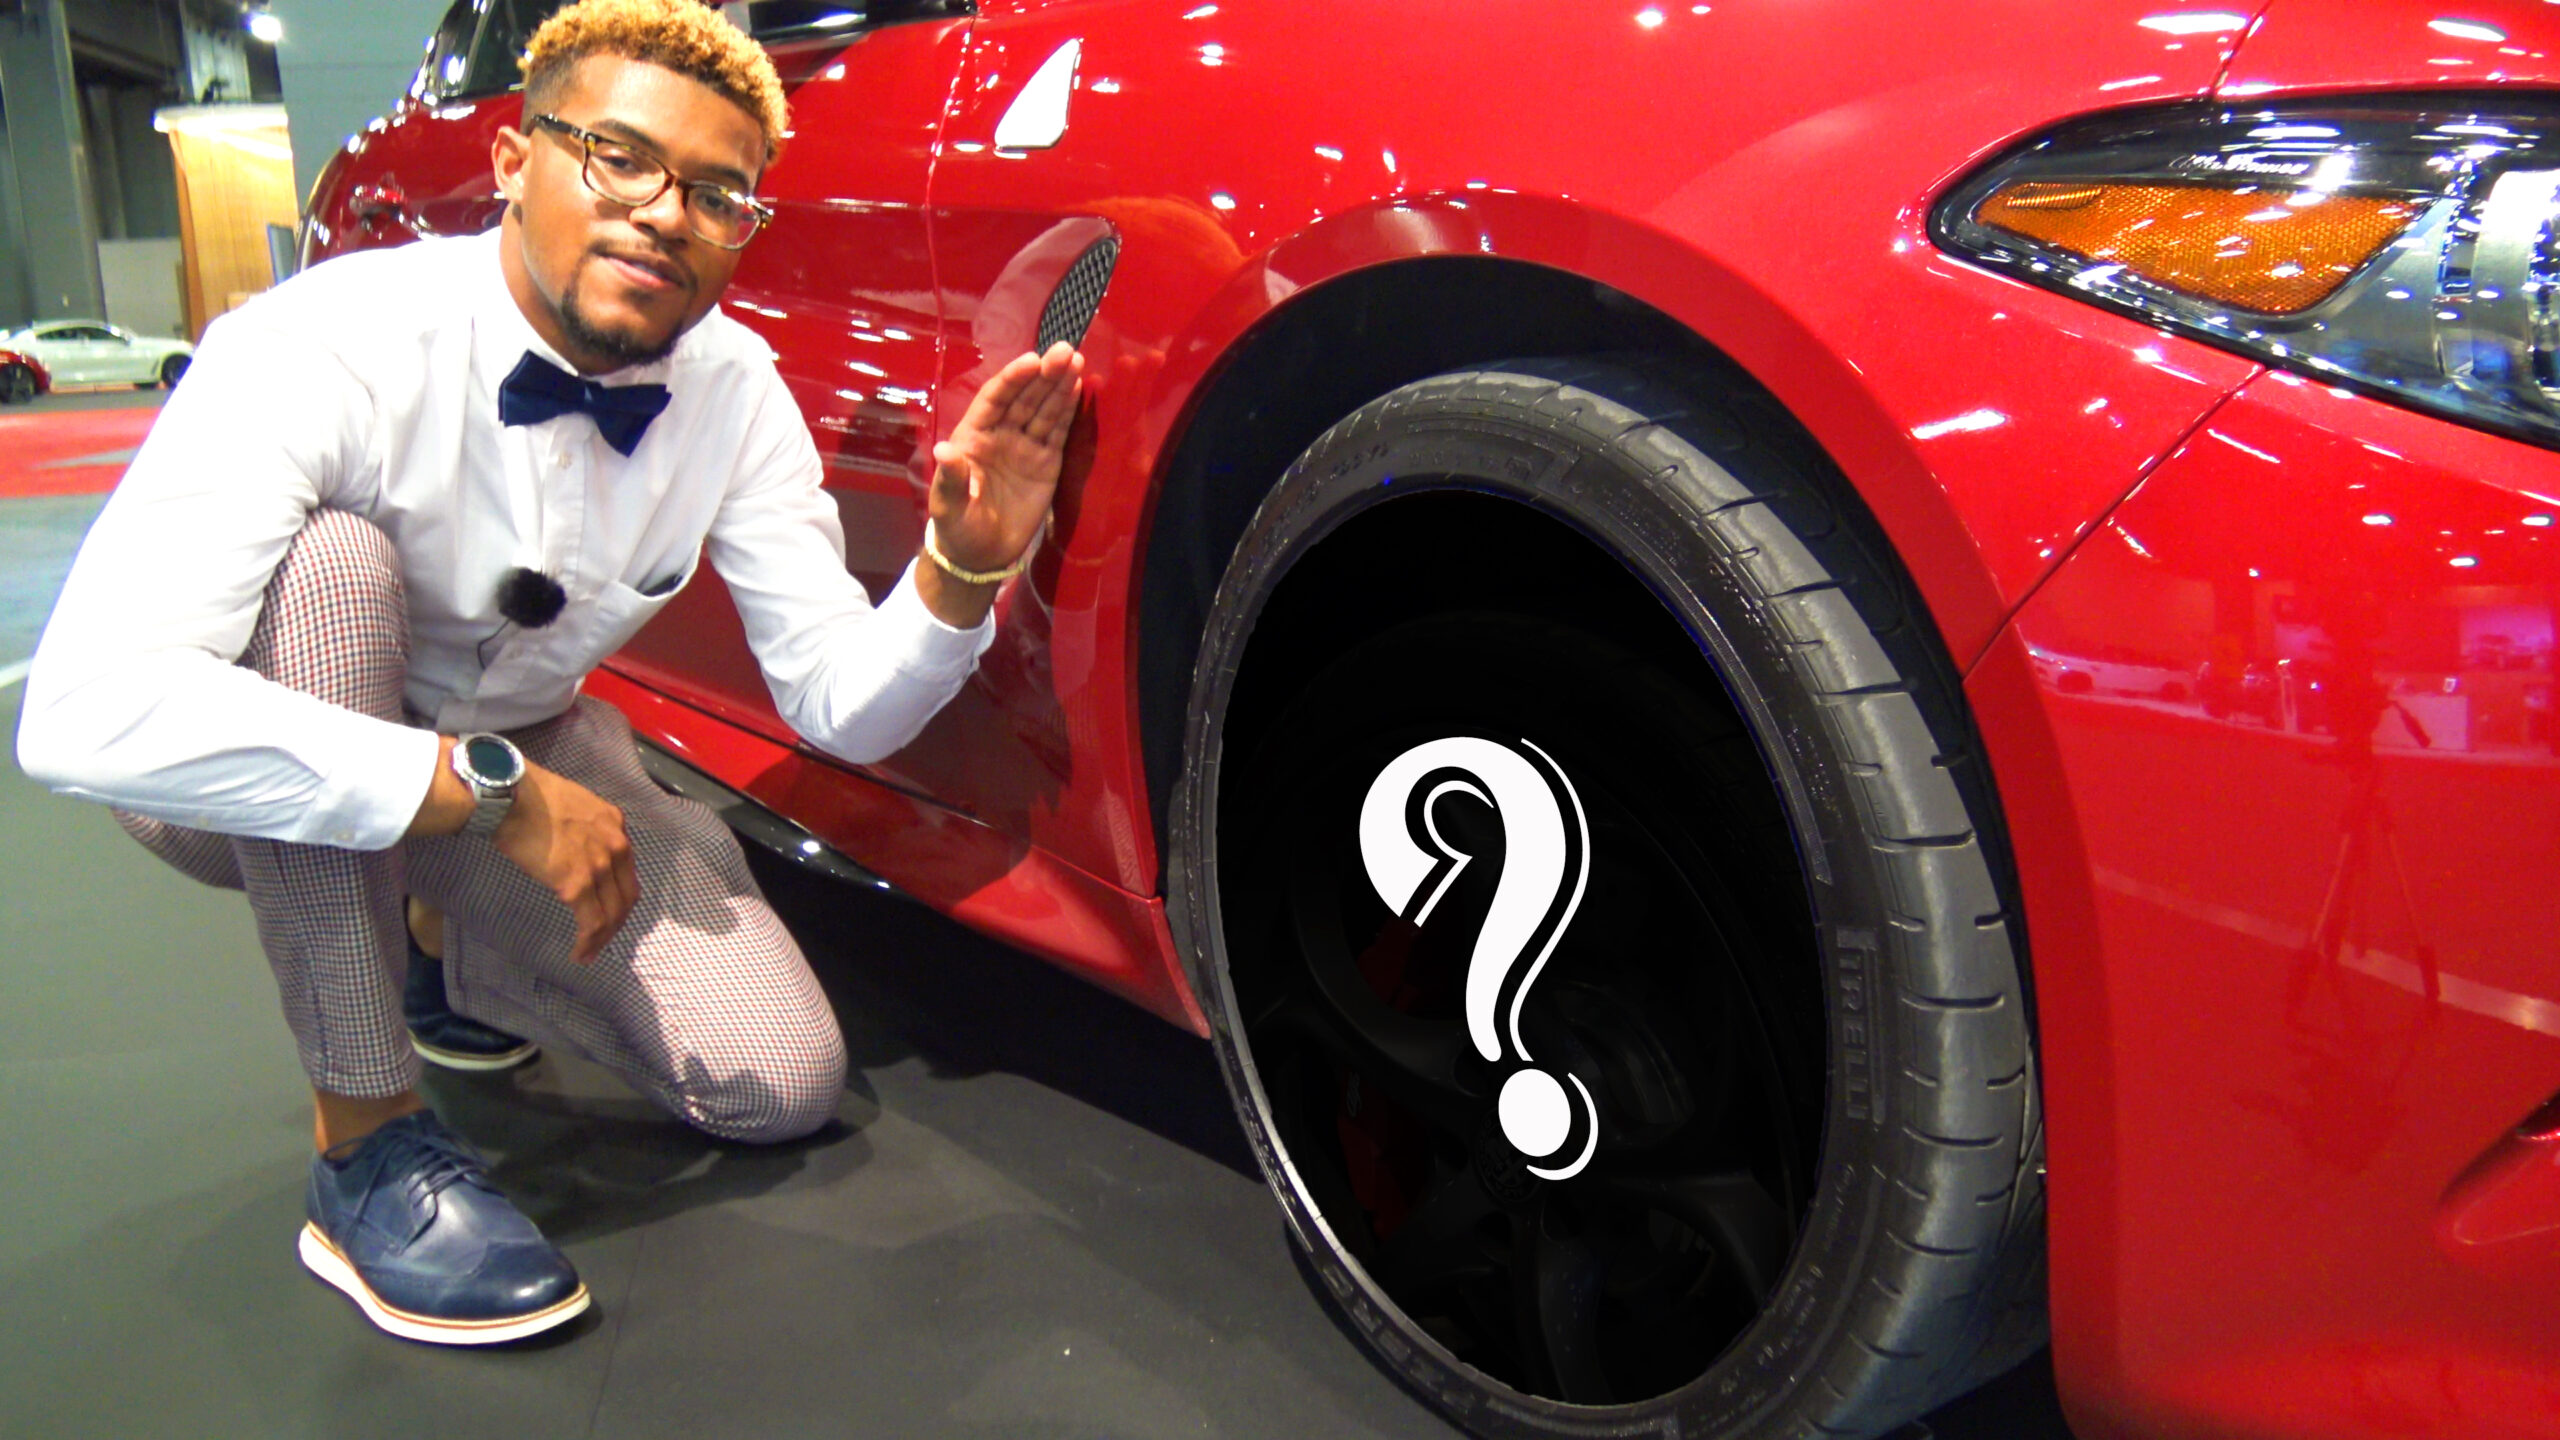 Want to Stand Out in 2020? Here are 5 New Car Rims to Consider!